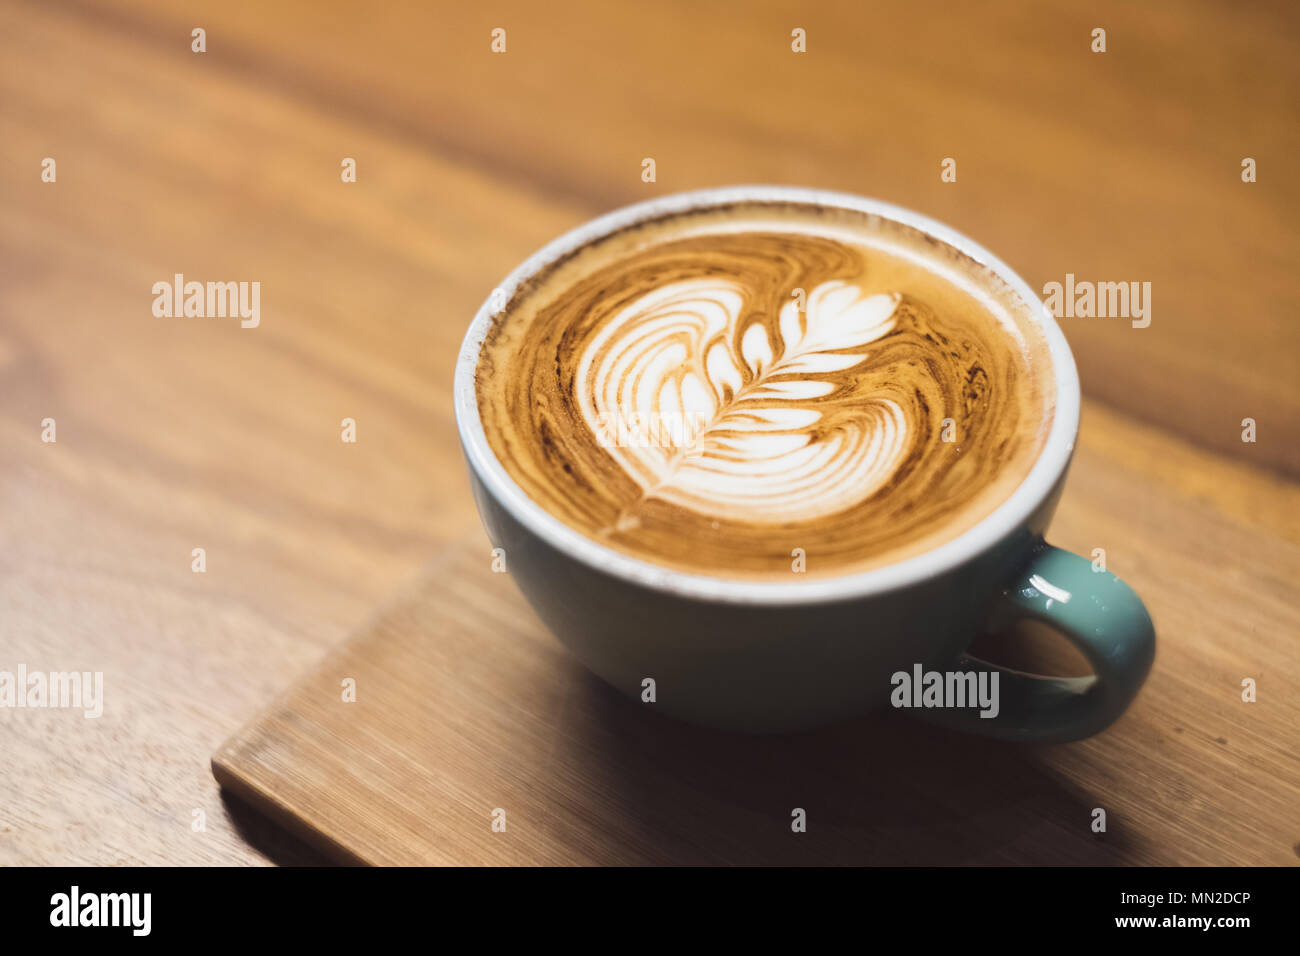 Close up hot cappuccino coffee cup with heart shape latte art on wood table at cafe,Drak tone filter,food and drink - Stock Image